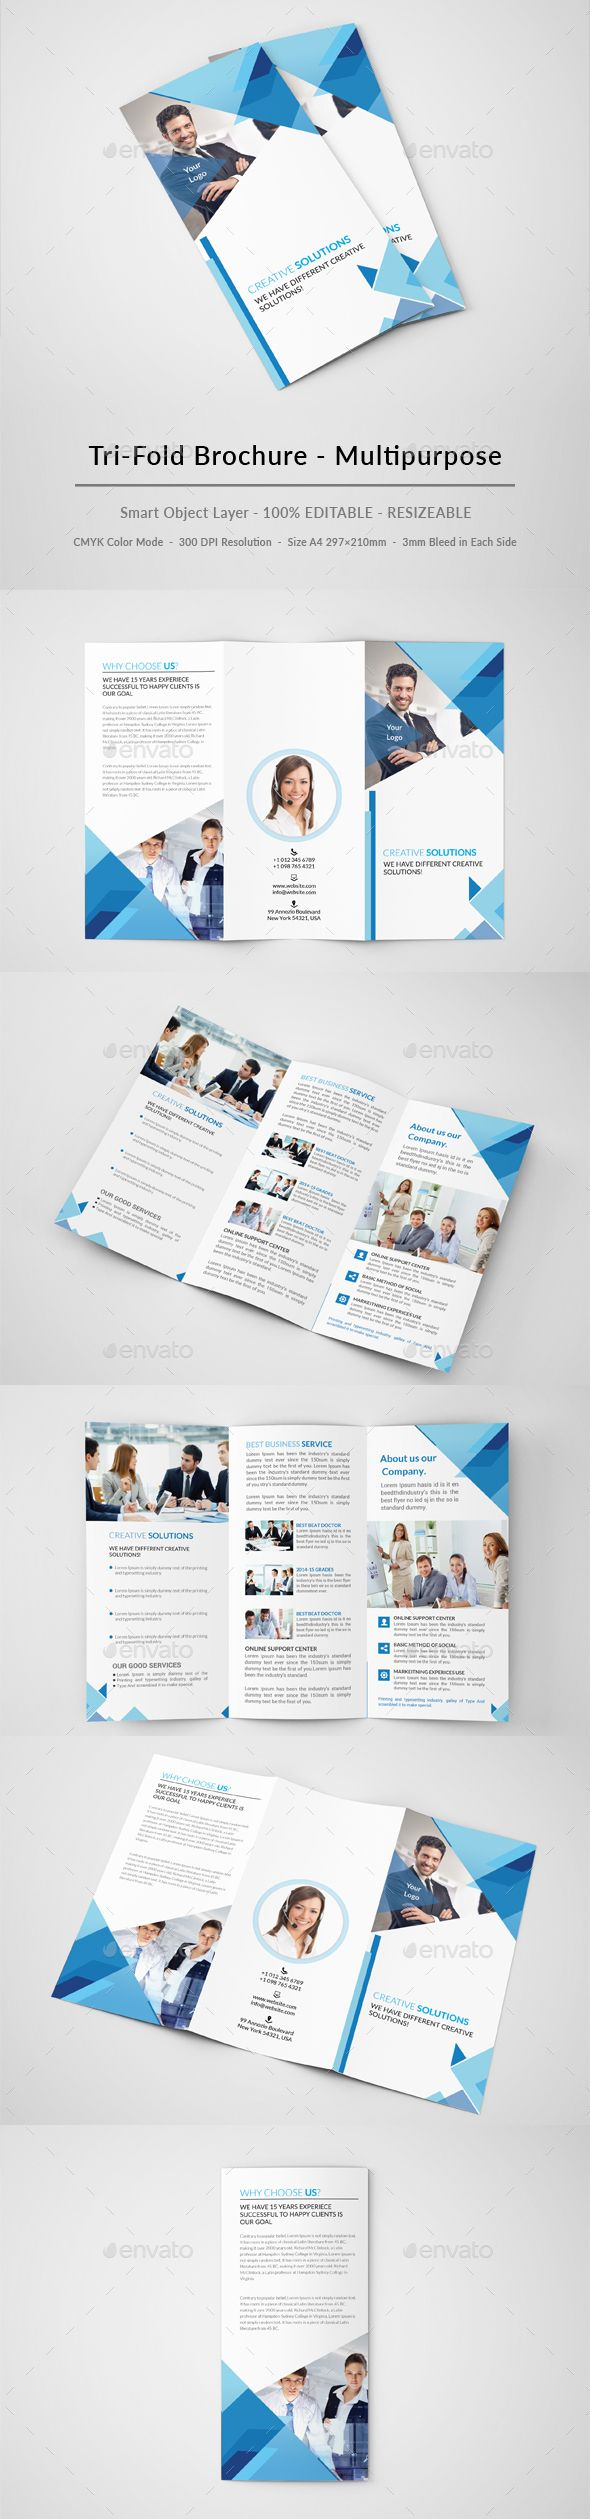 Business Creative Trifold Brochure Template PSD #design Download: http://graphicriver.net/item/business-creative-trifold-brochure/13555480?ref=ksioks